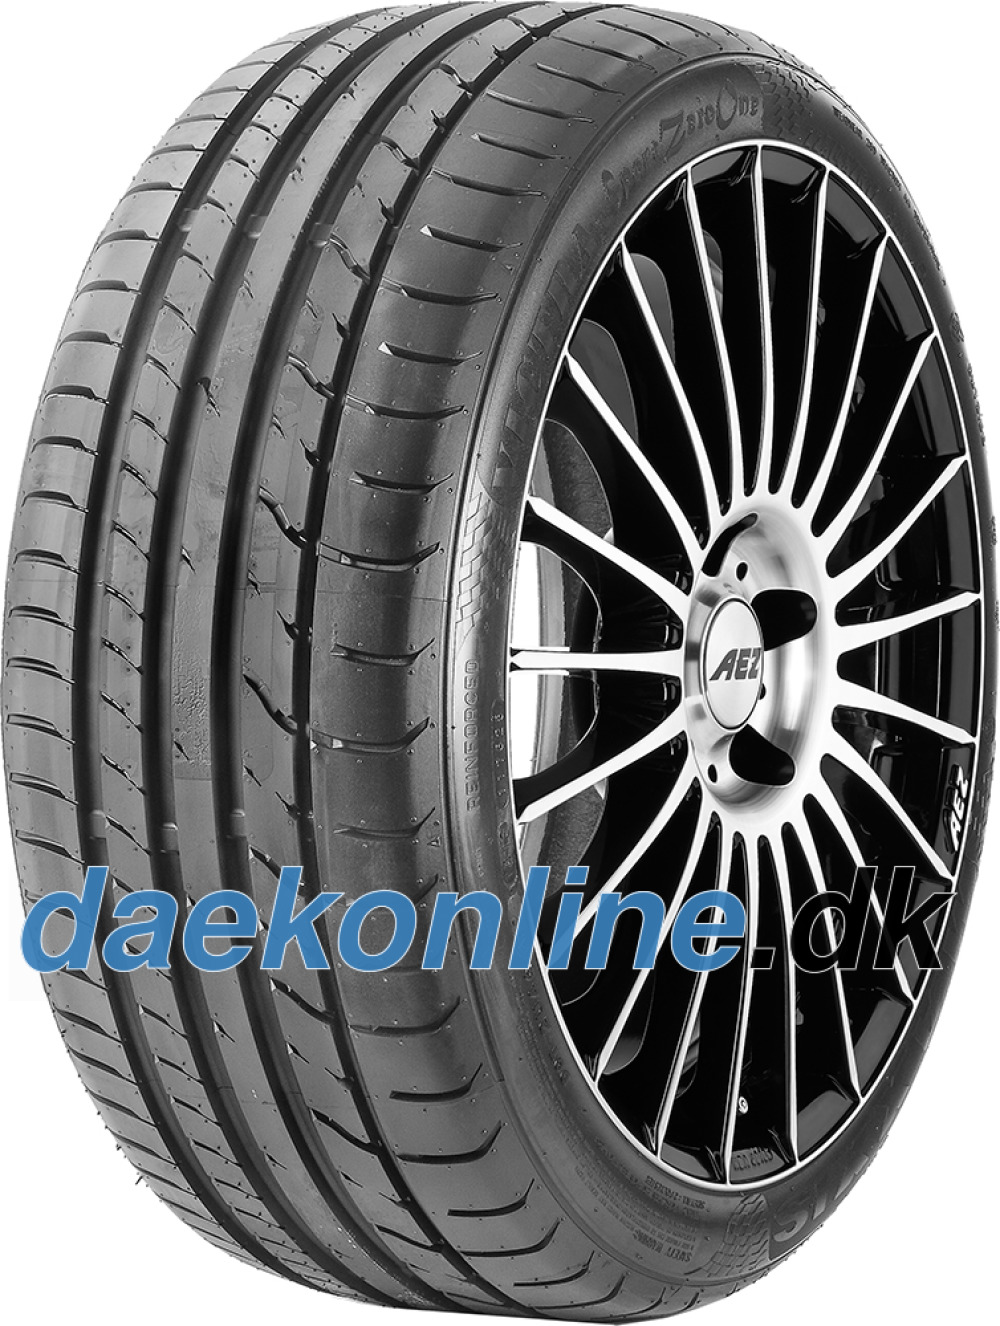 maxxis-ma-vs-01-21535-zr18-84y-xl-med-falgbeskyttelses-liste-fsl